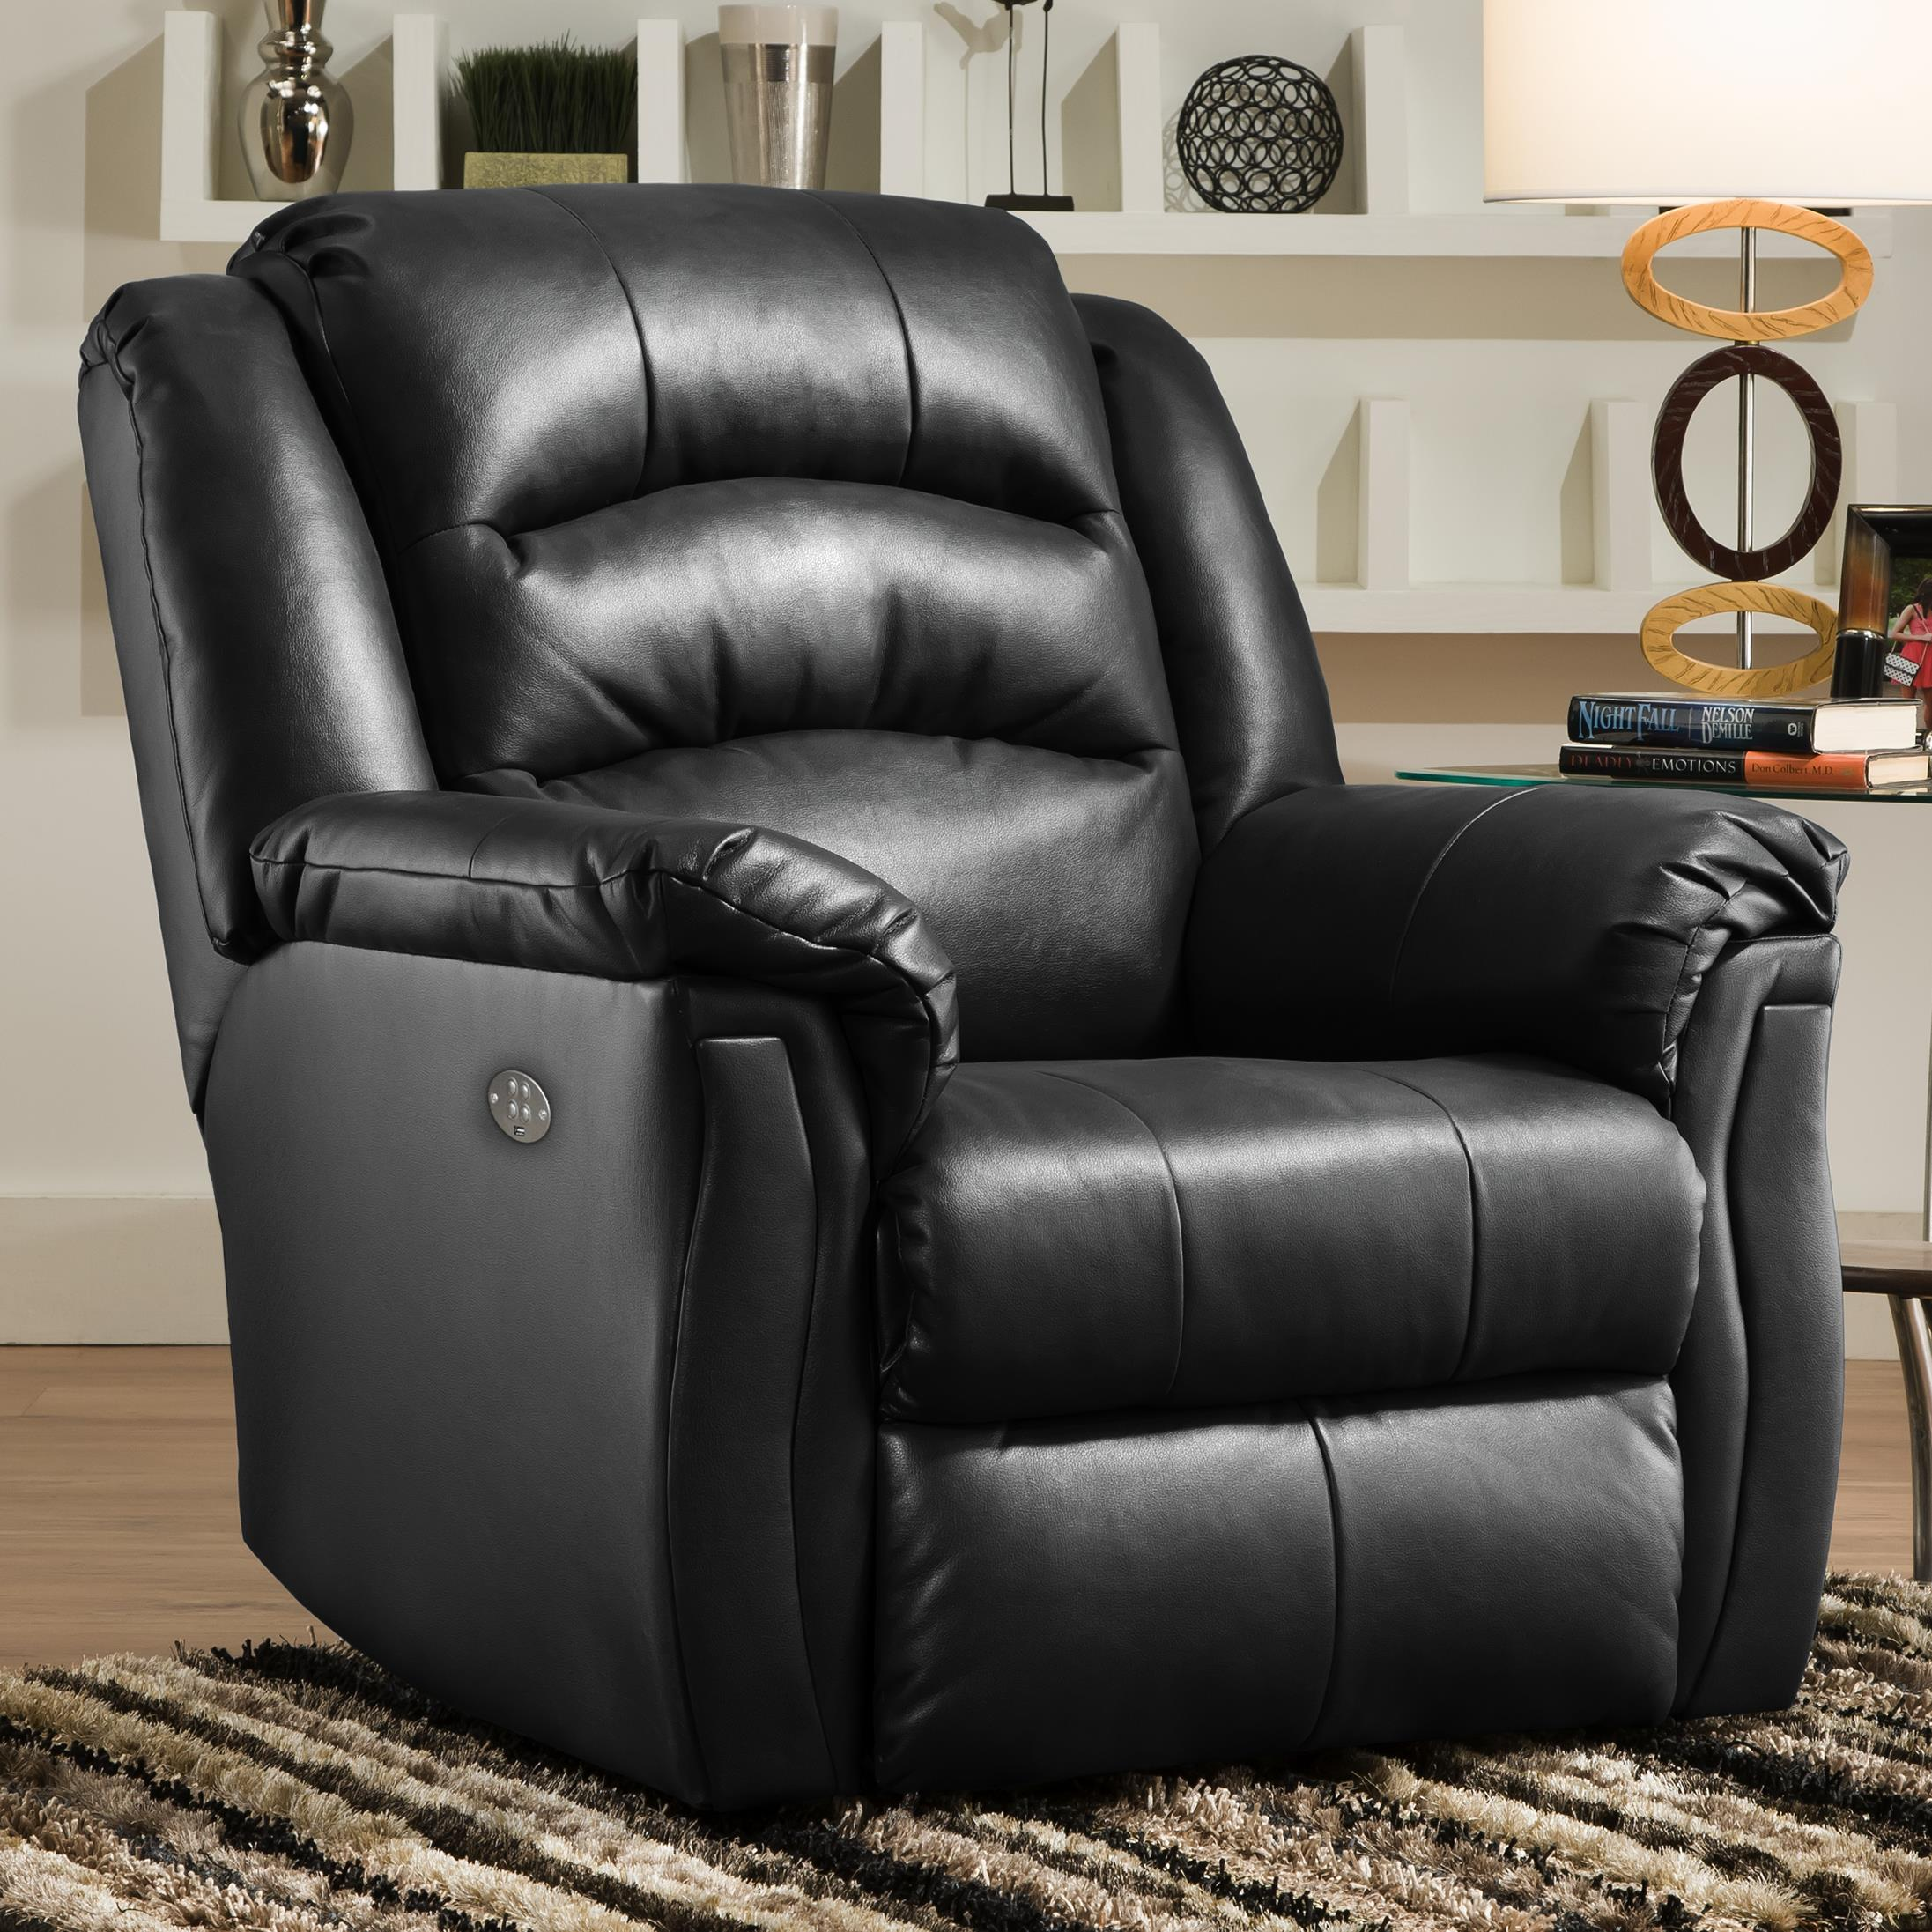 Recliners Max Wall Hugger Recliner By Southern Motion